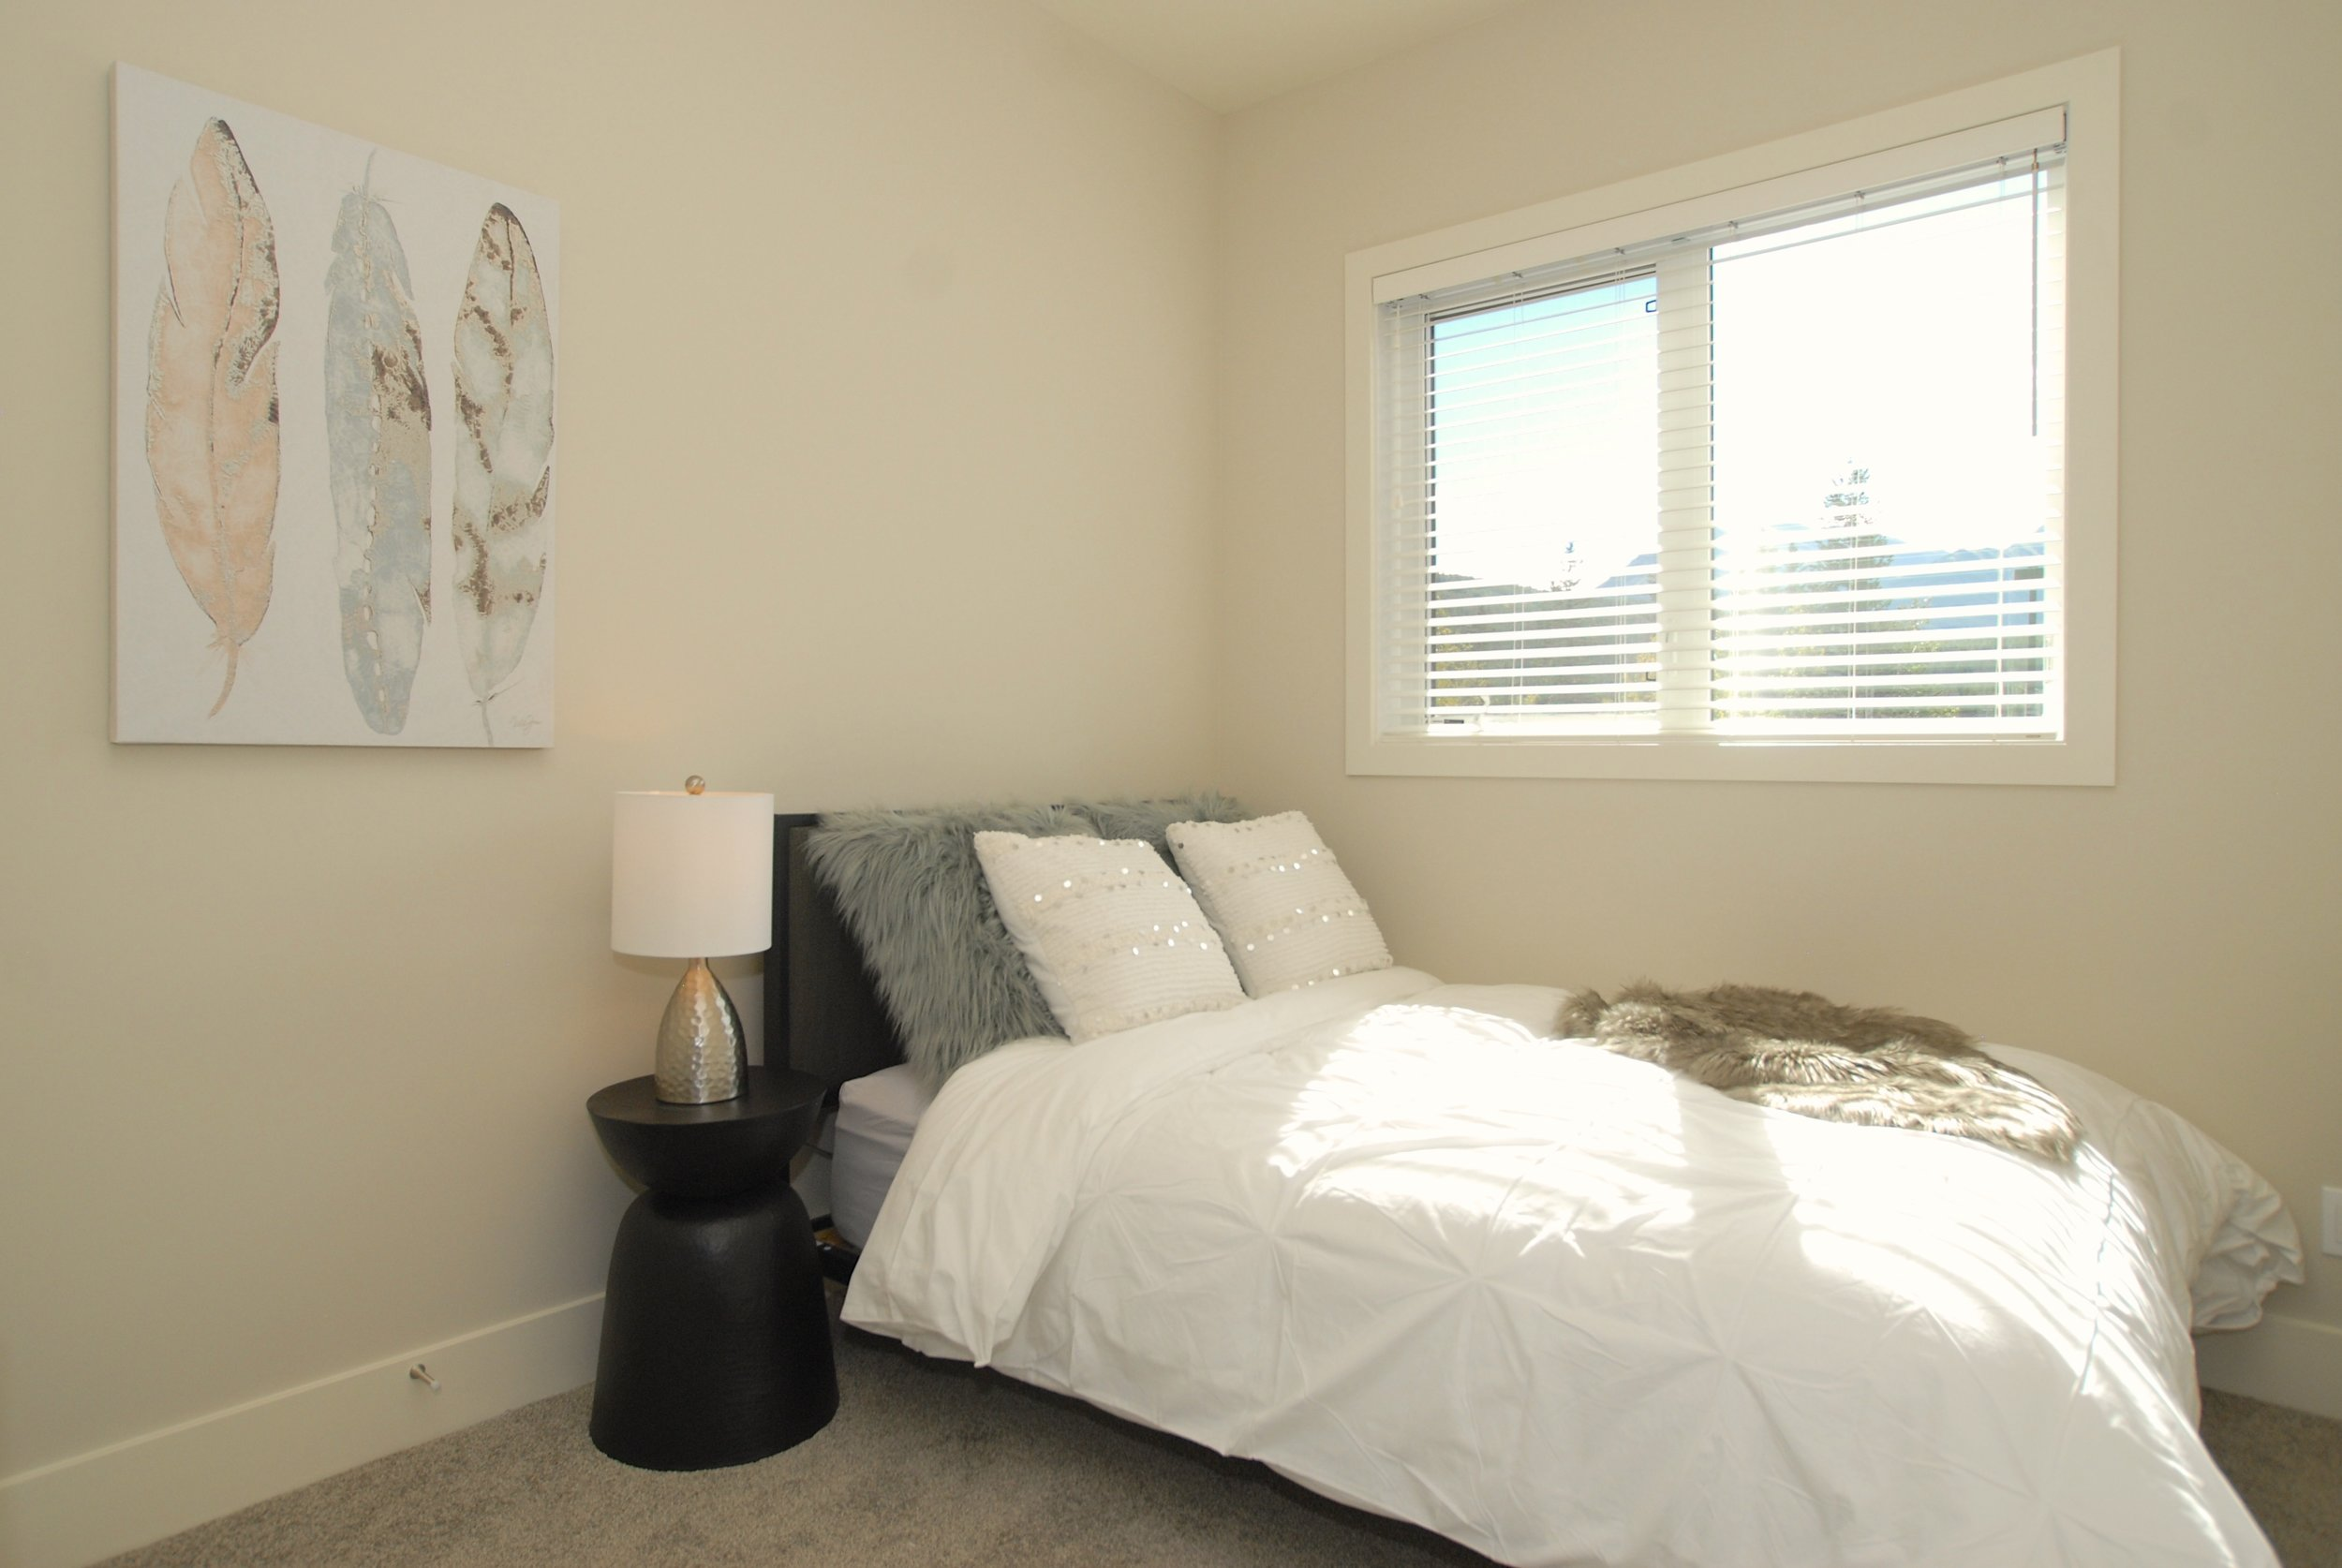 2nd bedroom filled with natural light